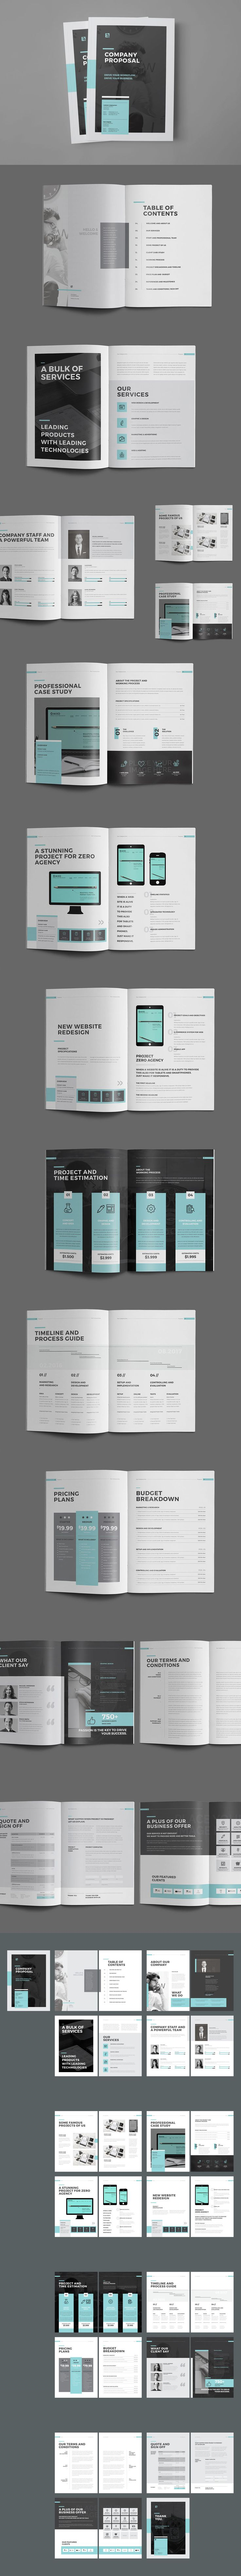 Minimal and Professional Proposal Brochure Template InDesign